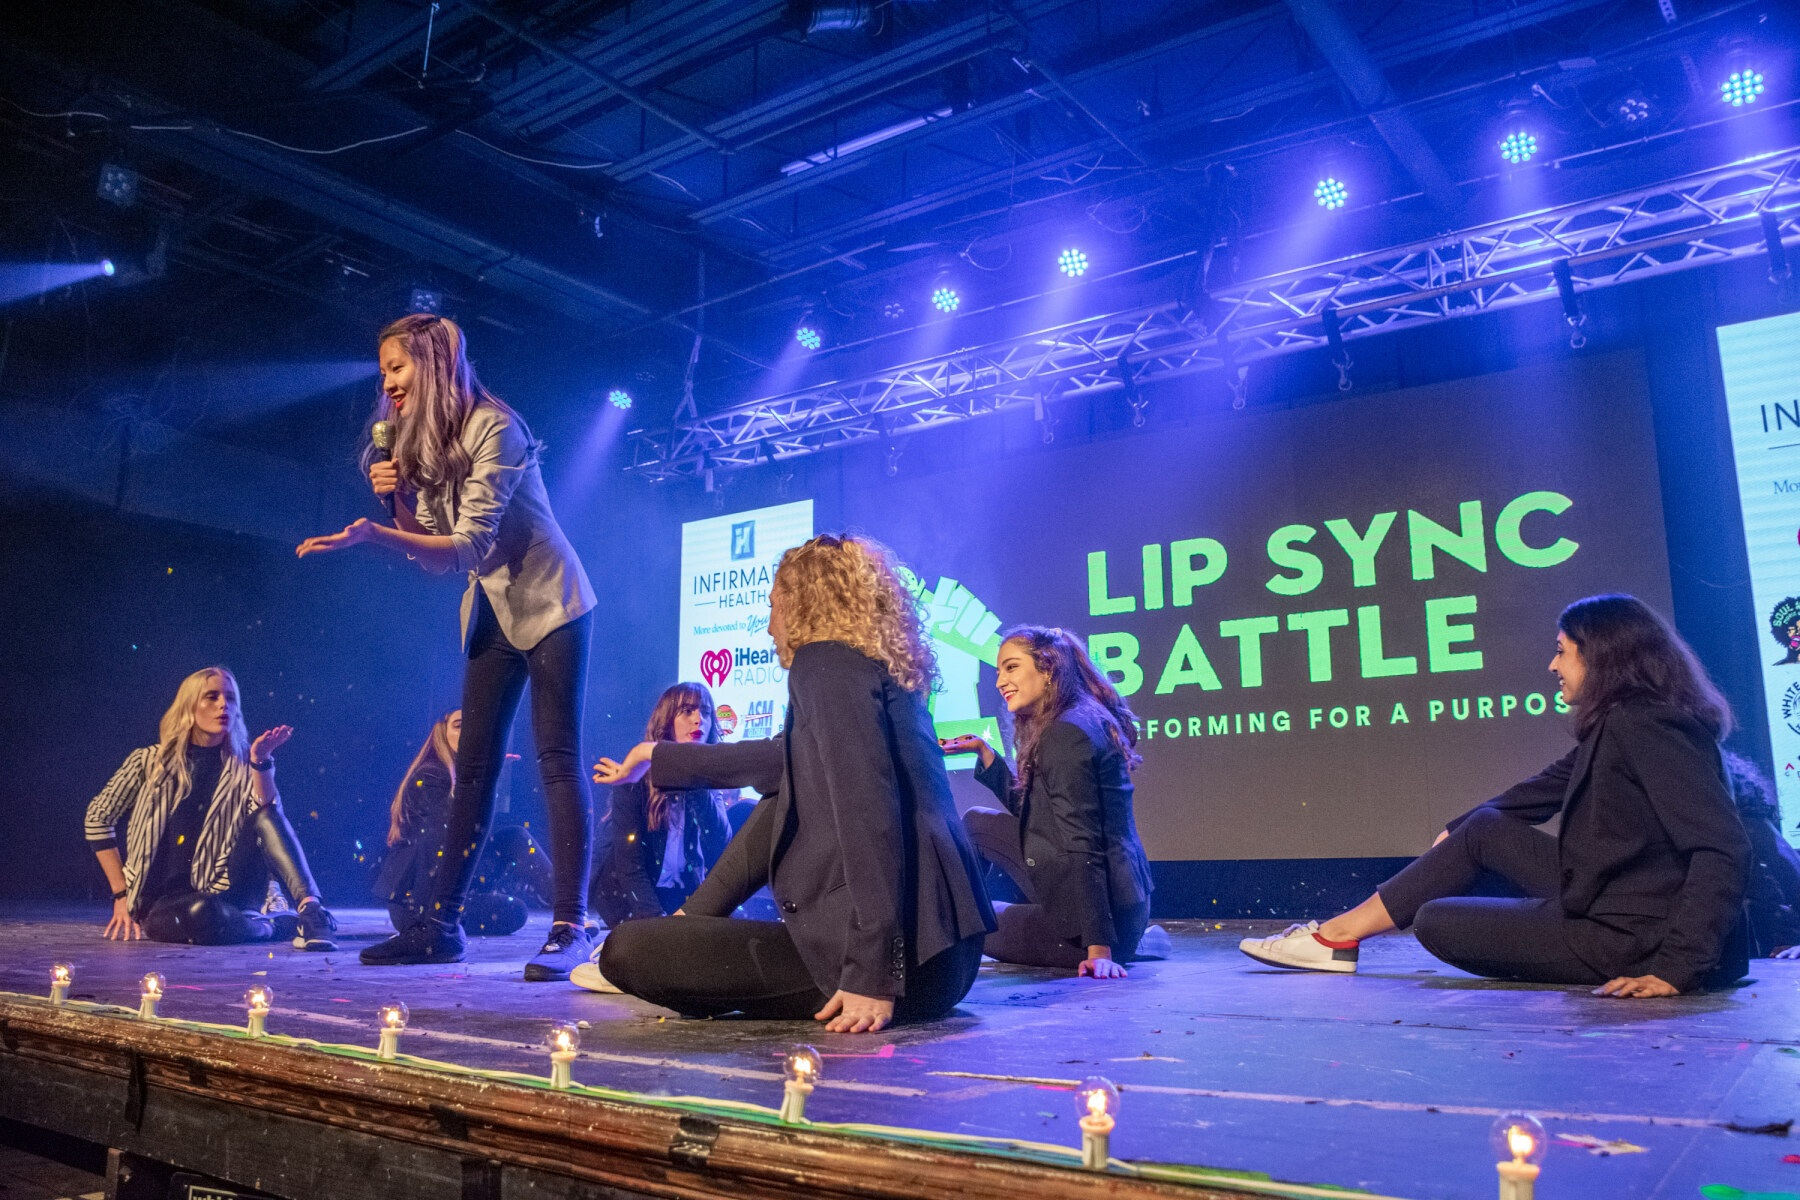 Lip Sync Battle20122